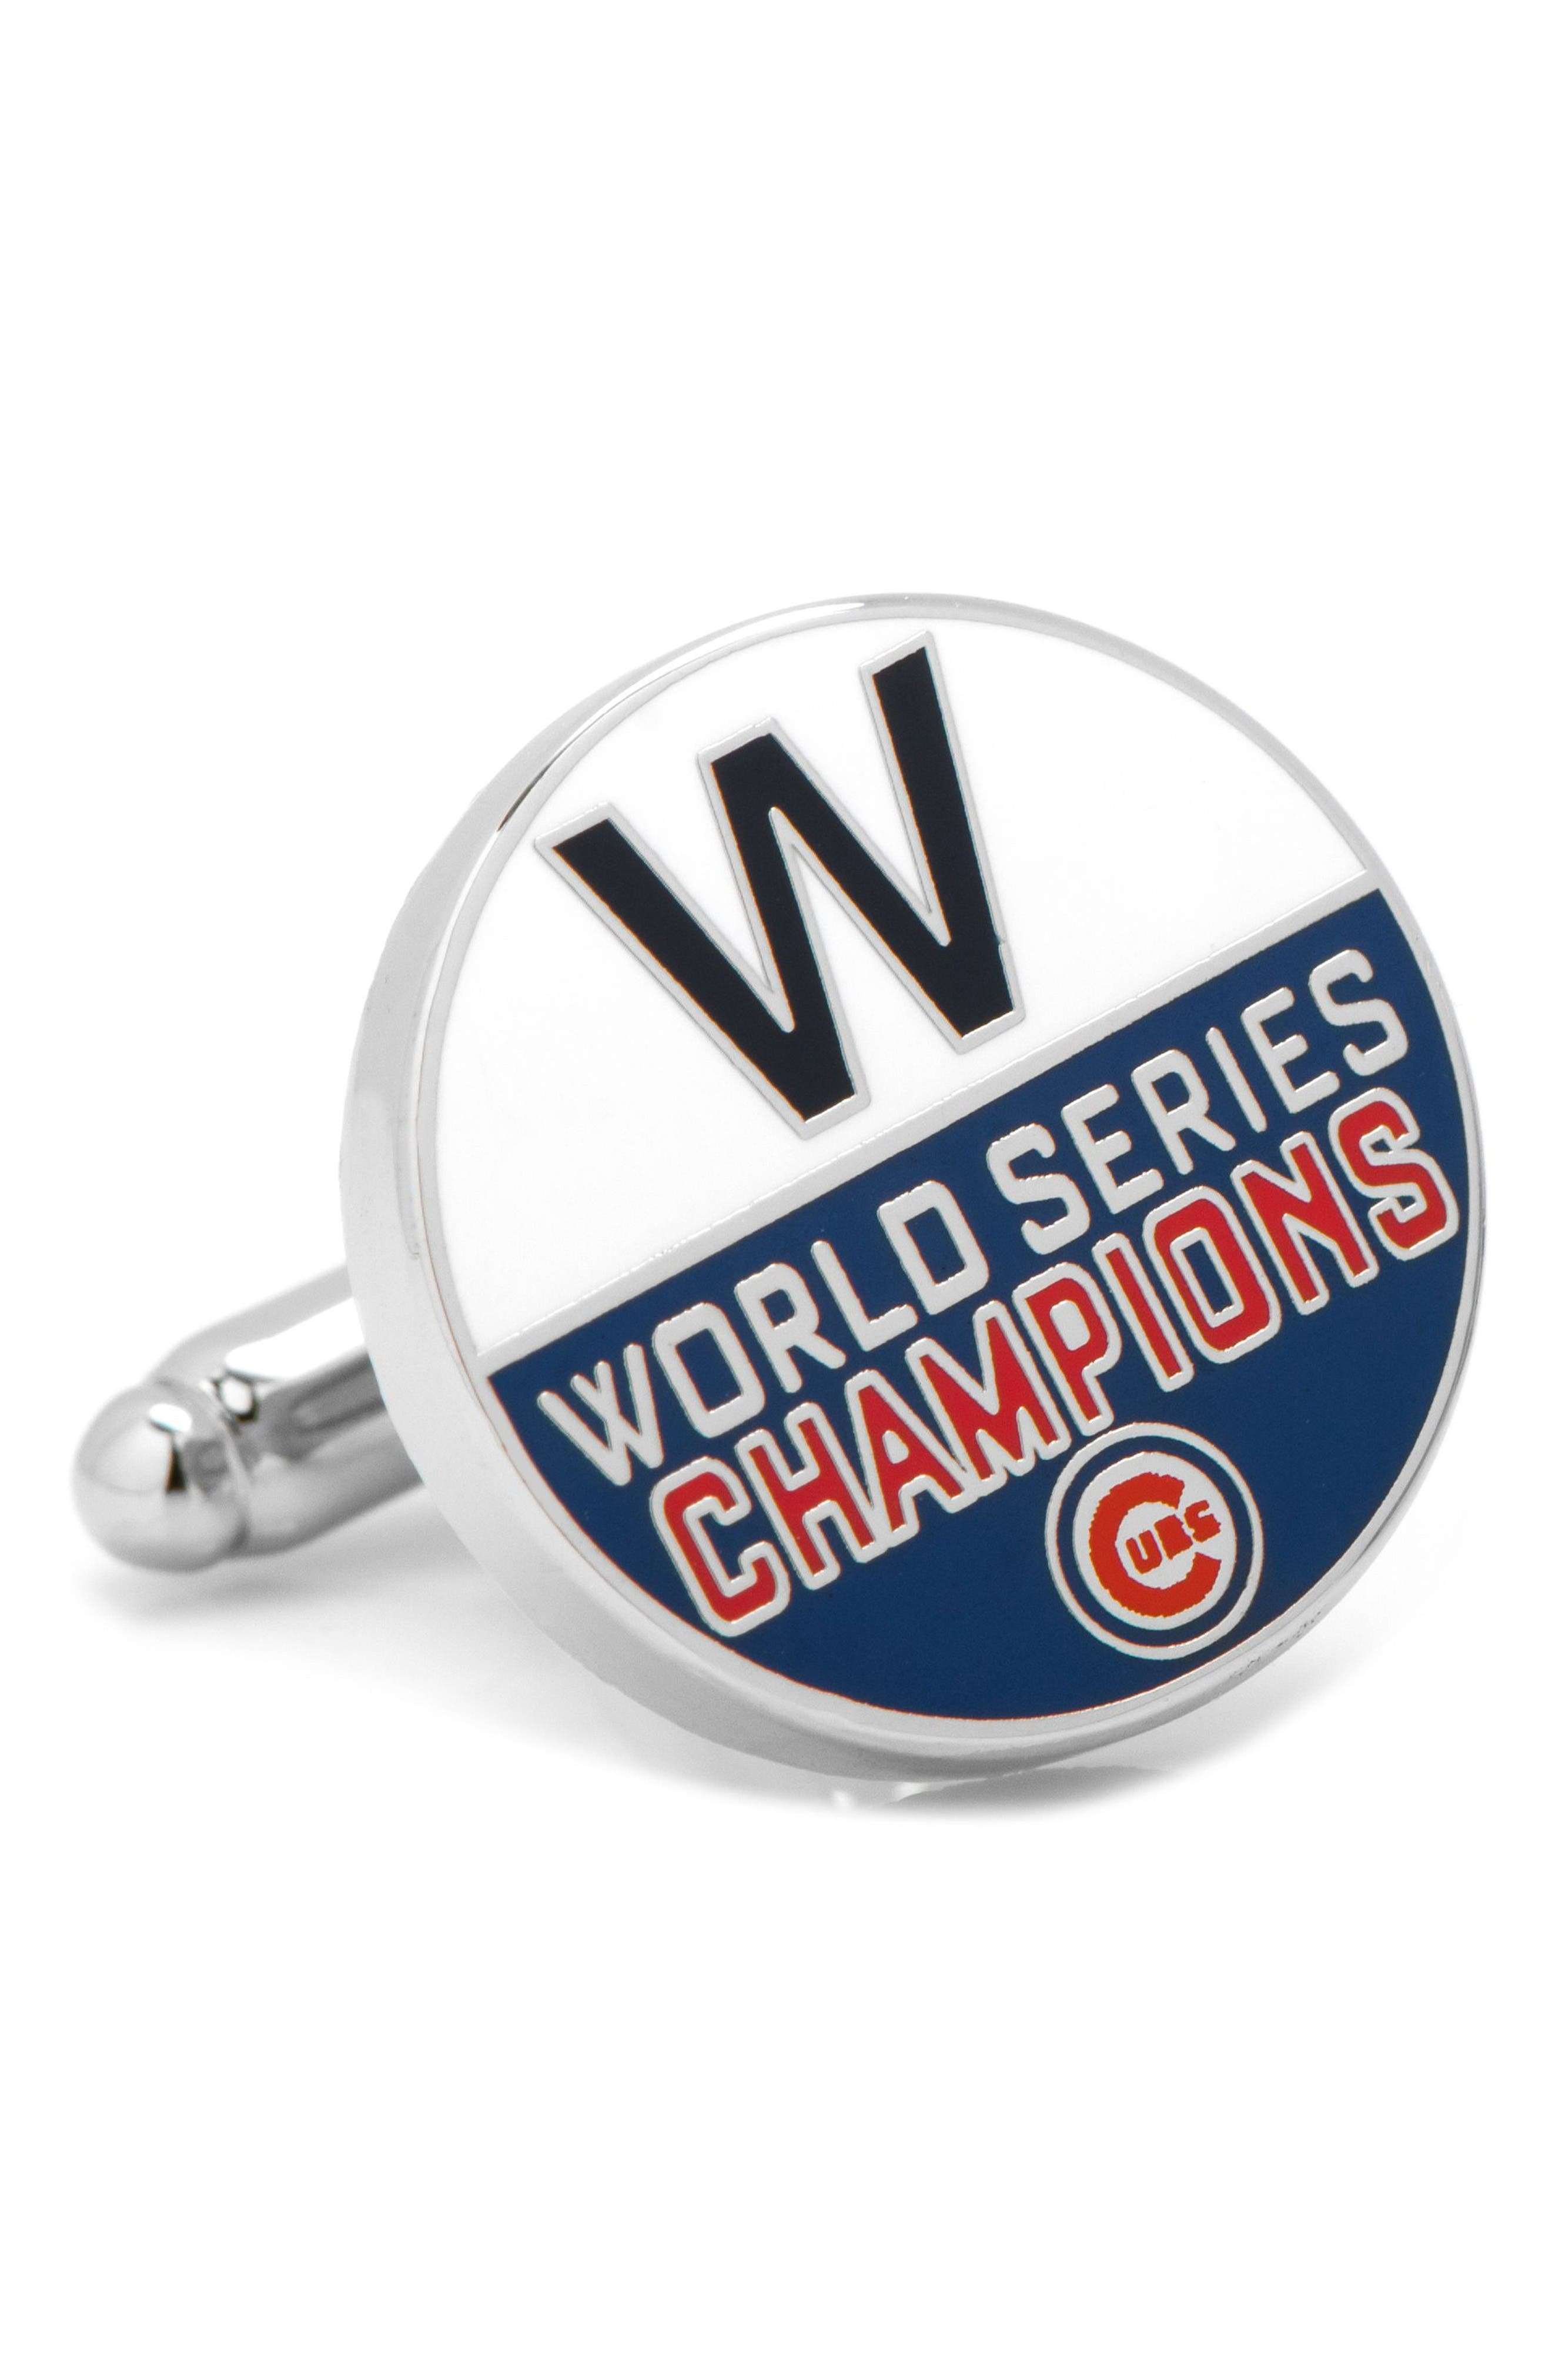 Cubs World Series Cuff Links,                             Alternate thumbnail 2, color,                             Silver Multi